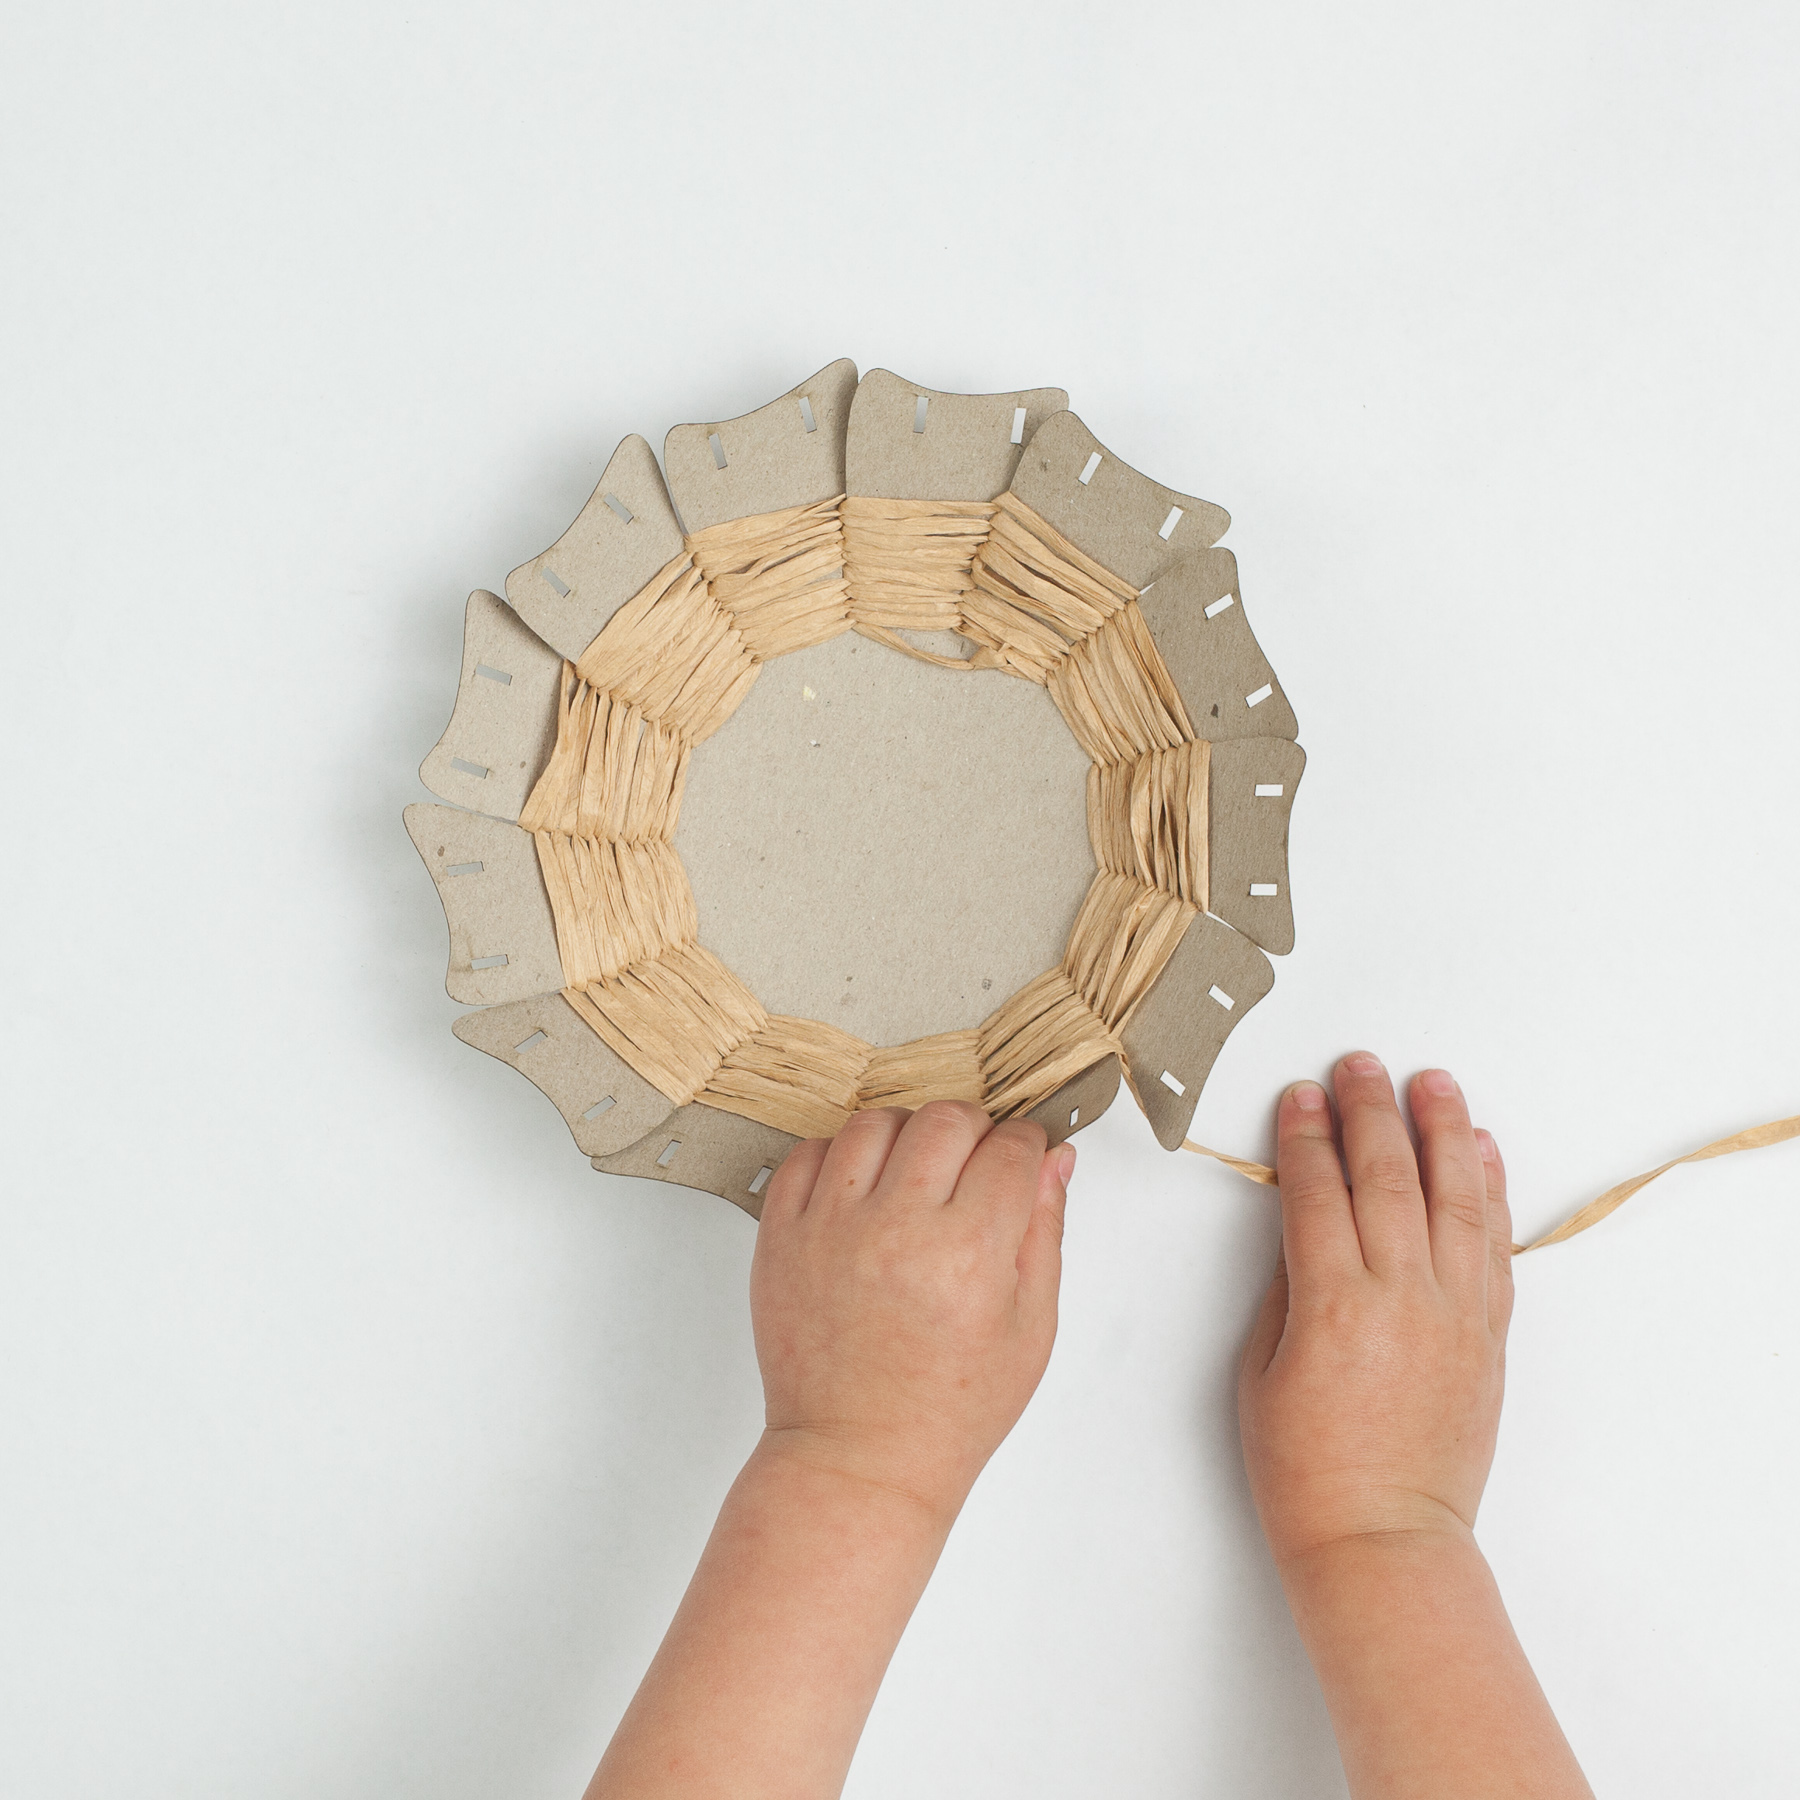 Pull and bend a little to shape the basket